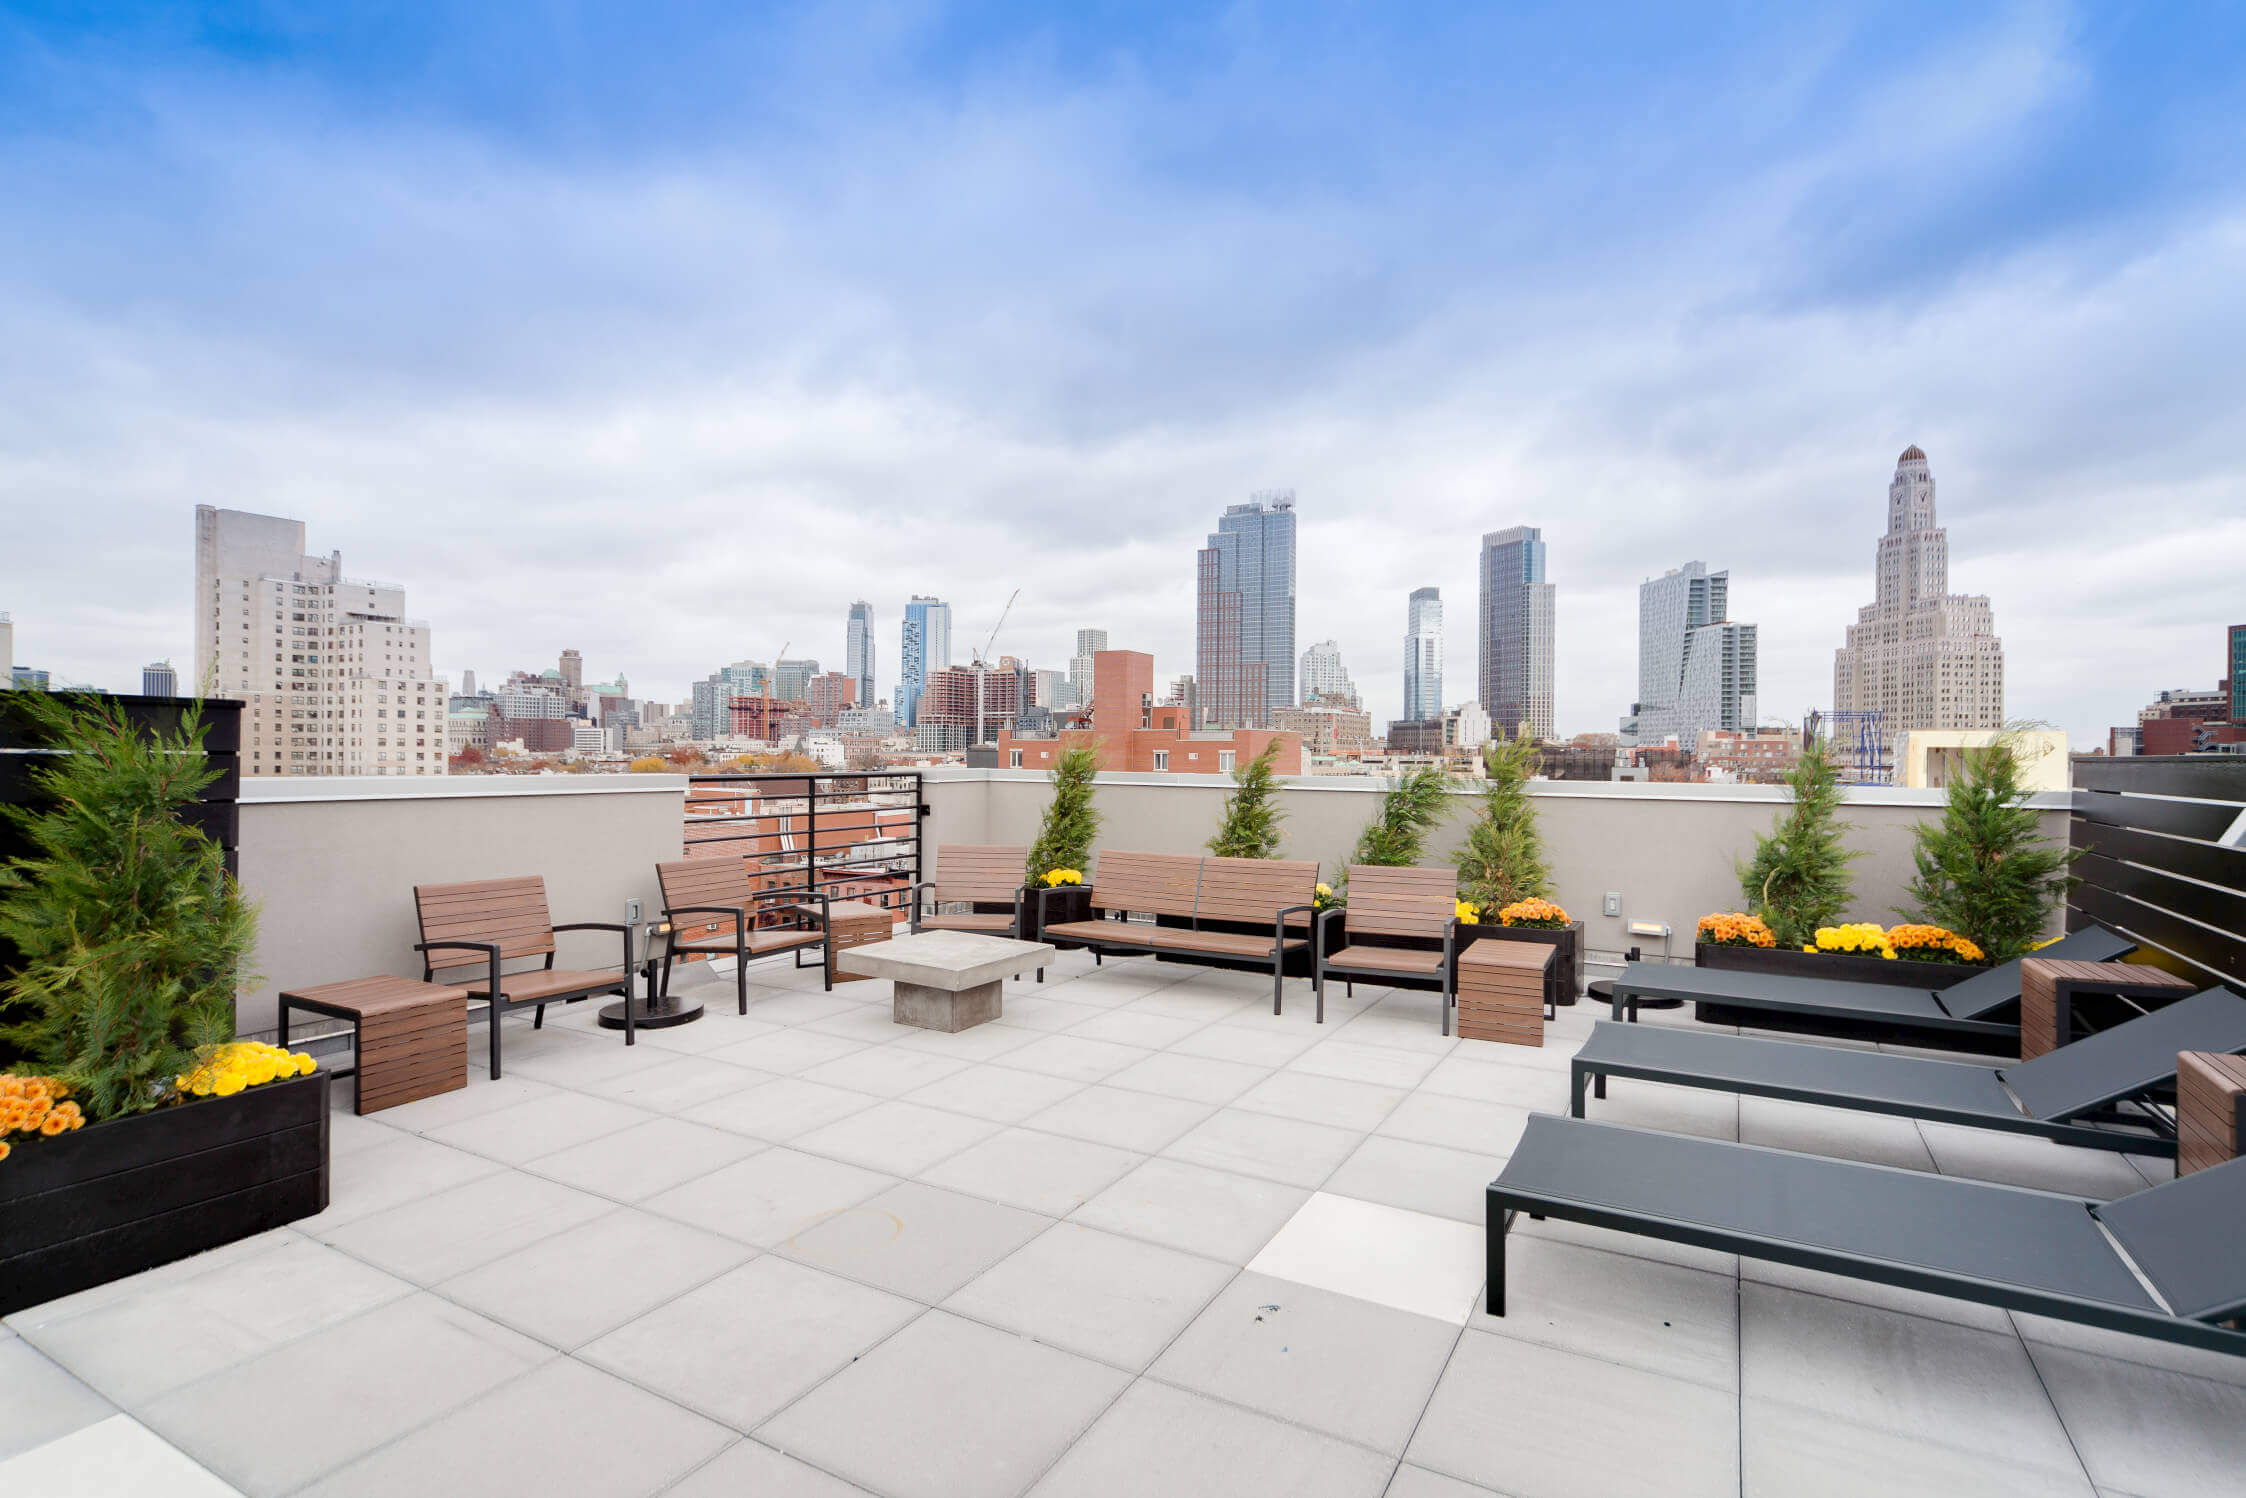 The private rooftop at Common Baltic in Boerum Hill, Brooklyn.